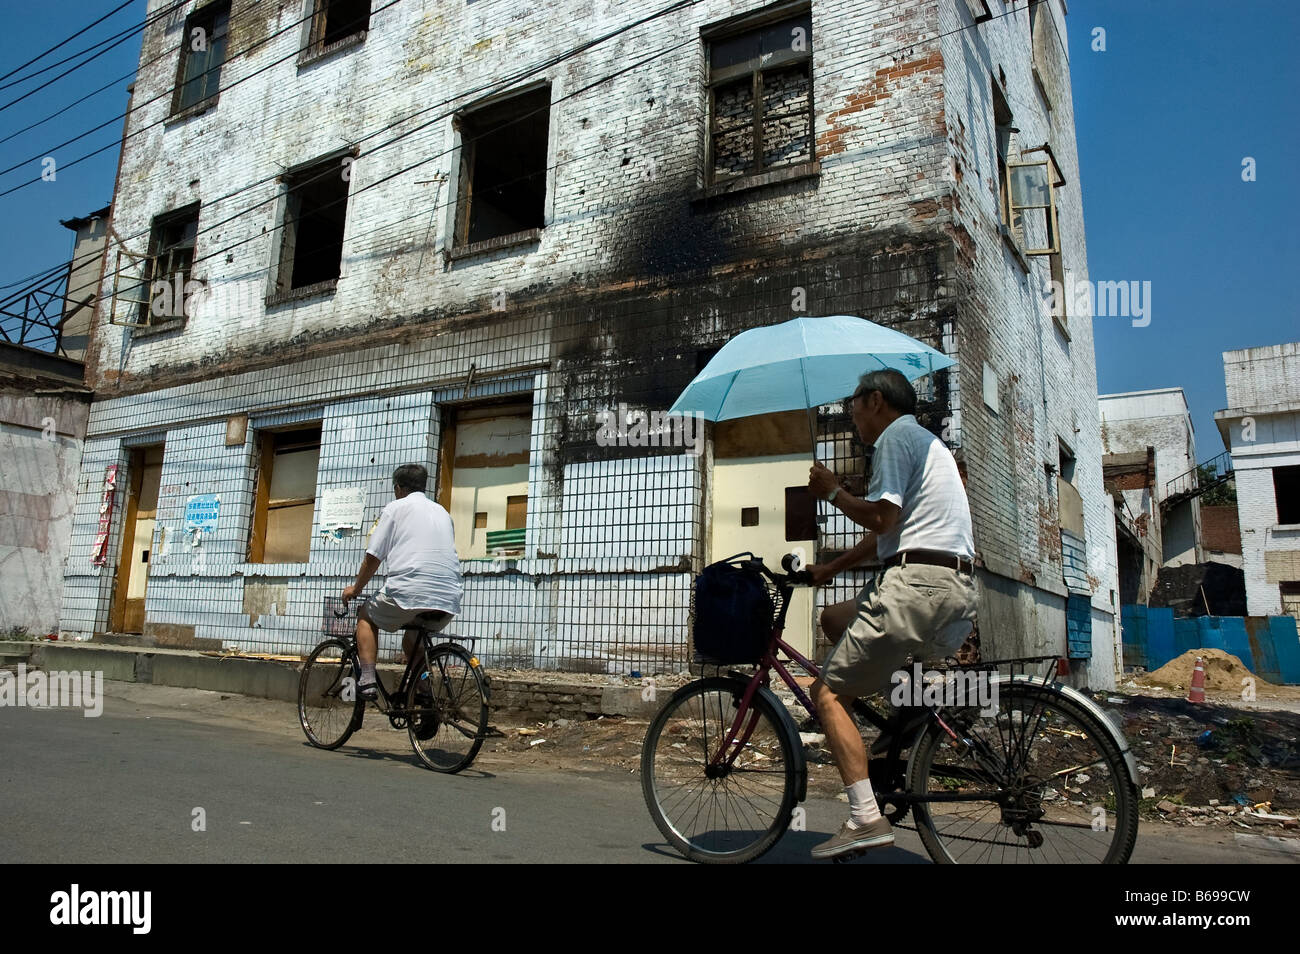 two bicycles pass by a building prepared to be demolished in hutong area in beijing - Stock Image